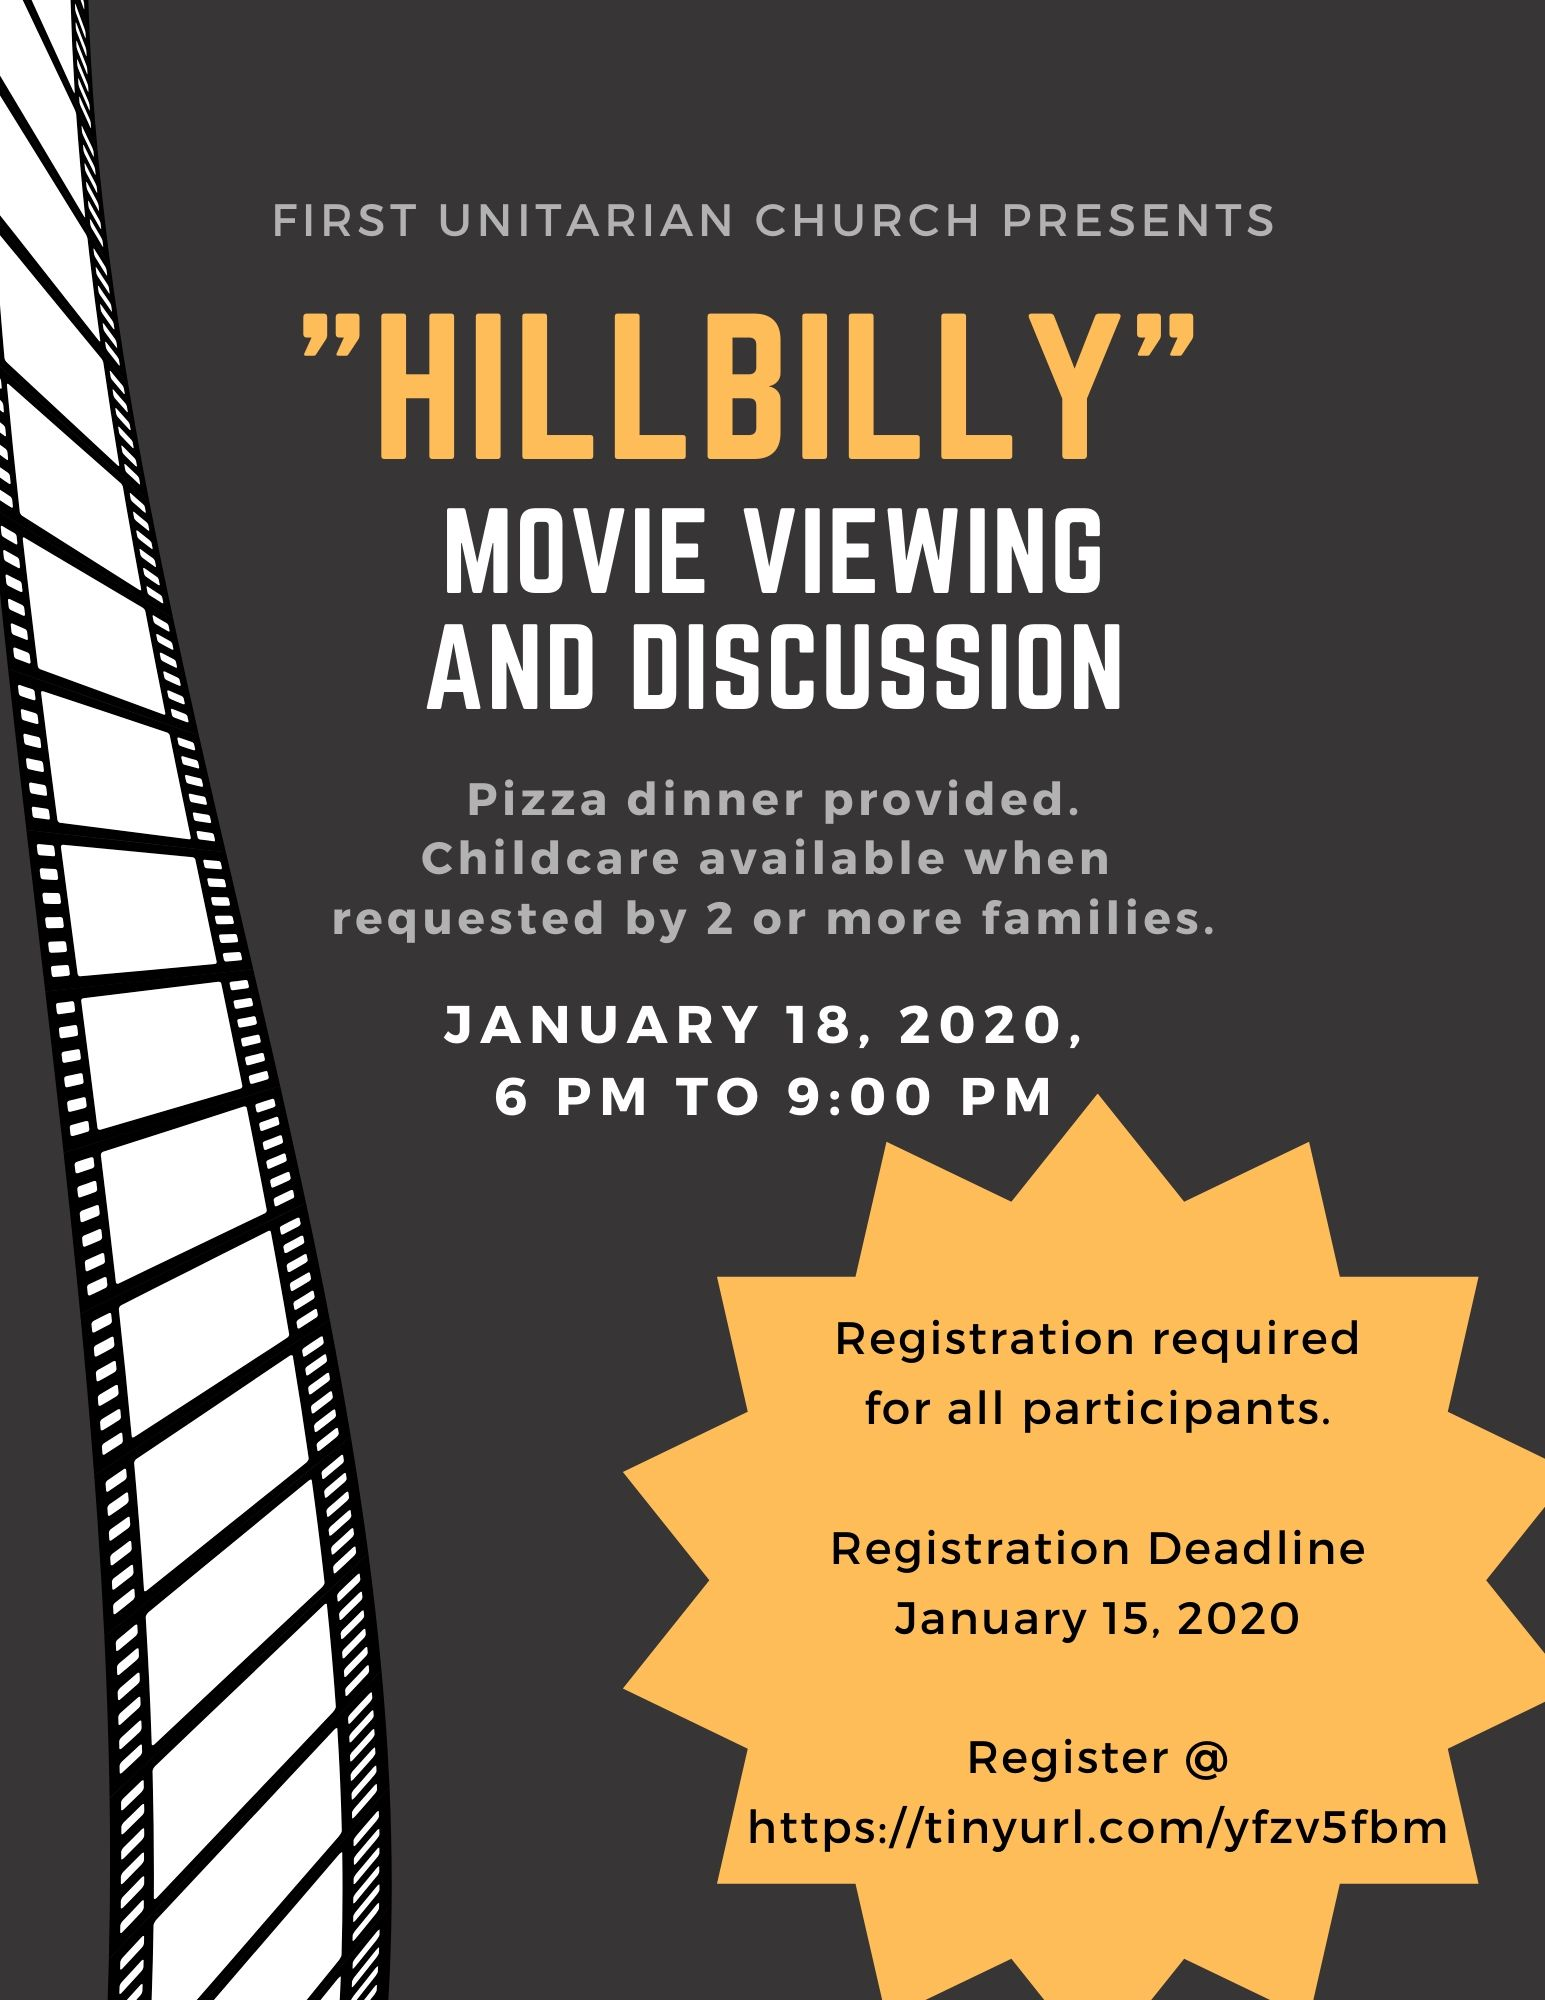 Hillbilly Movie Viewing and Discussion